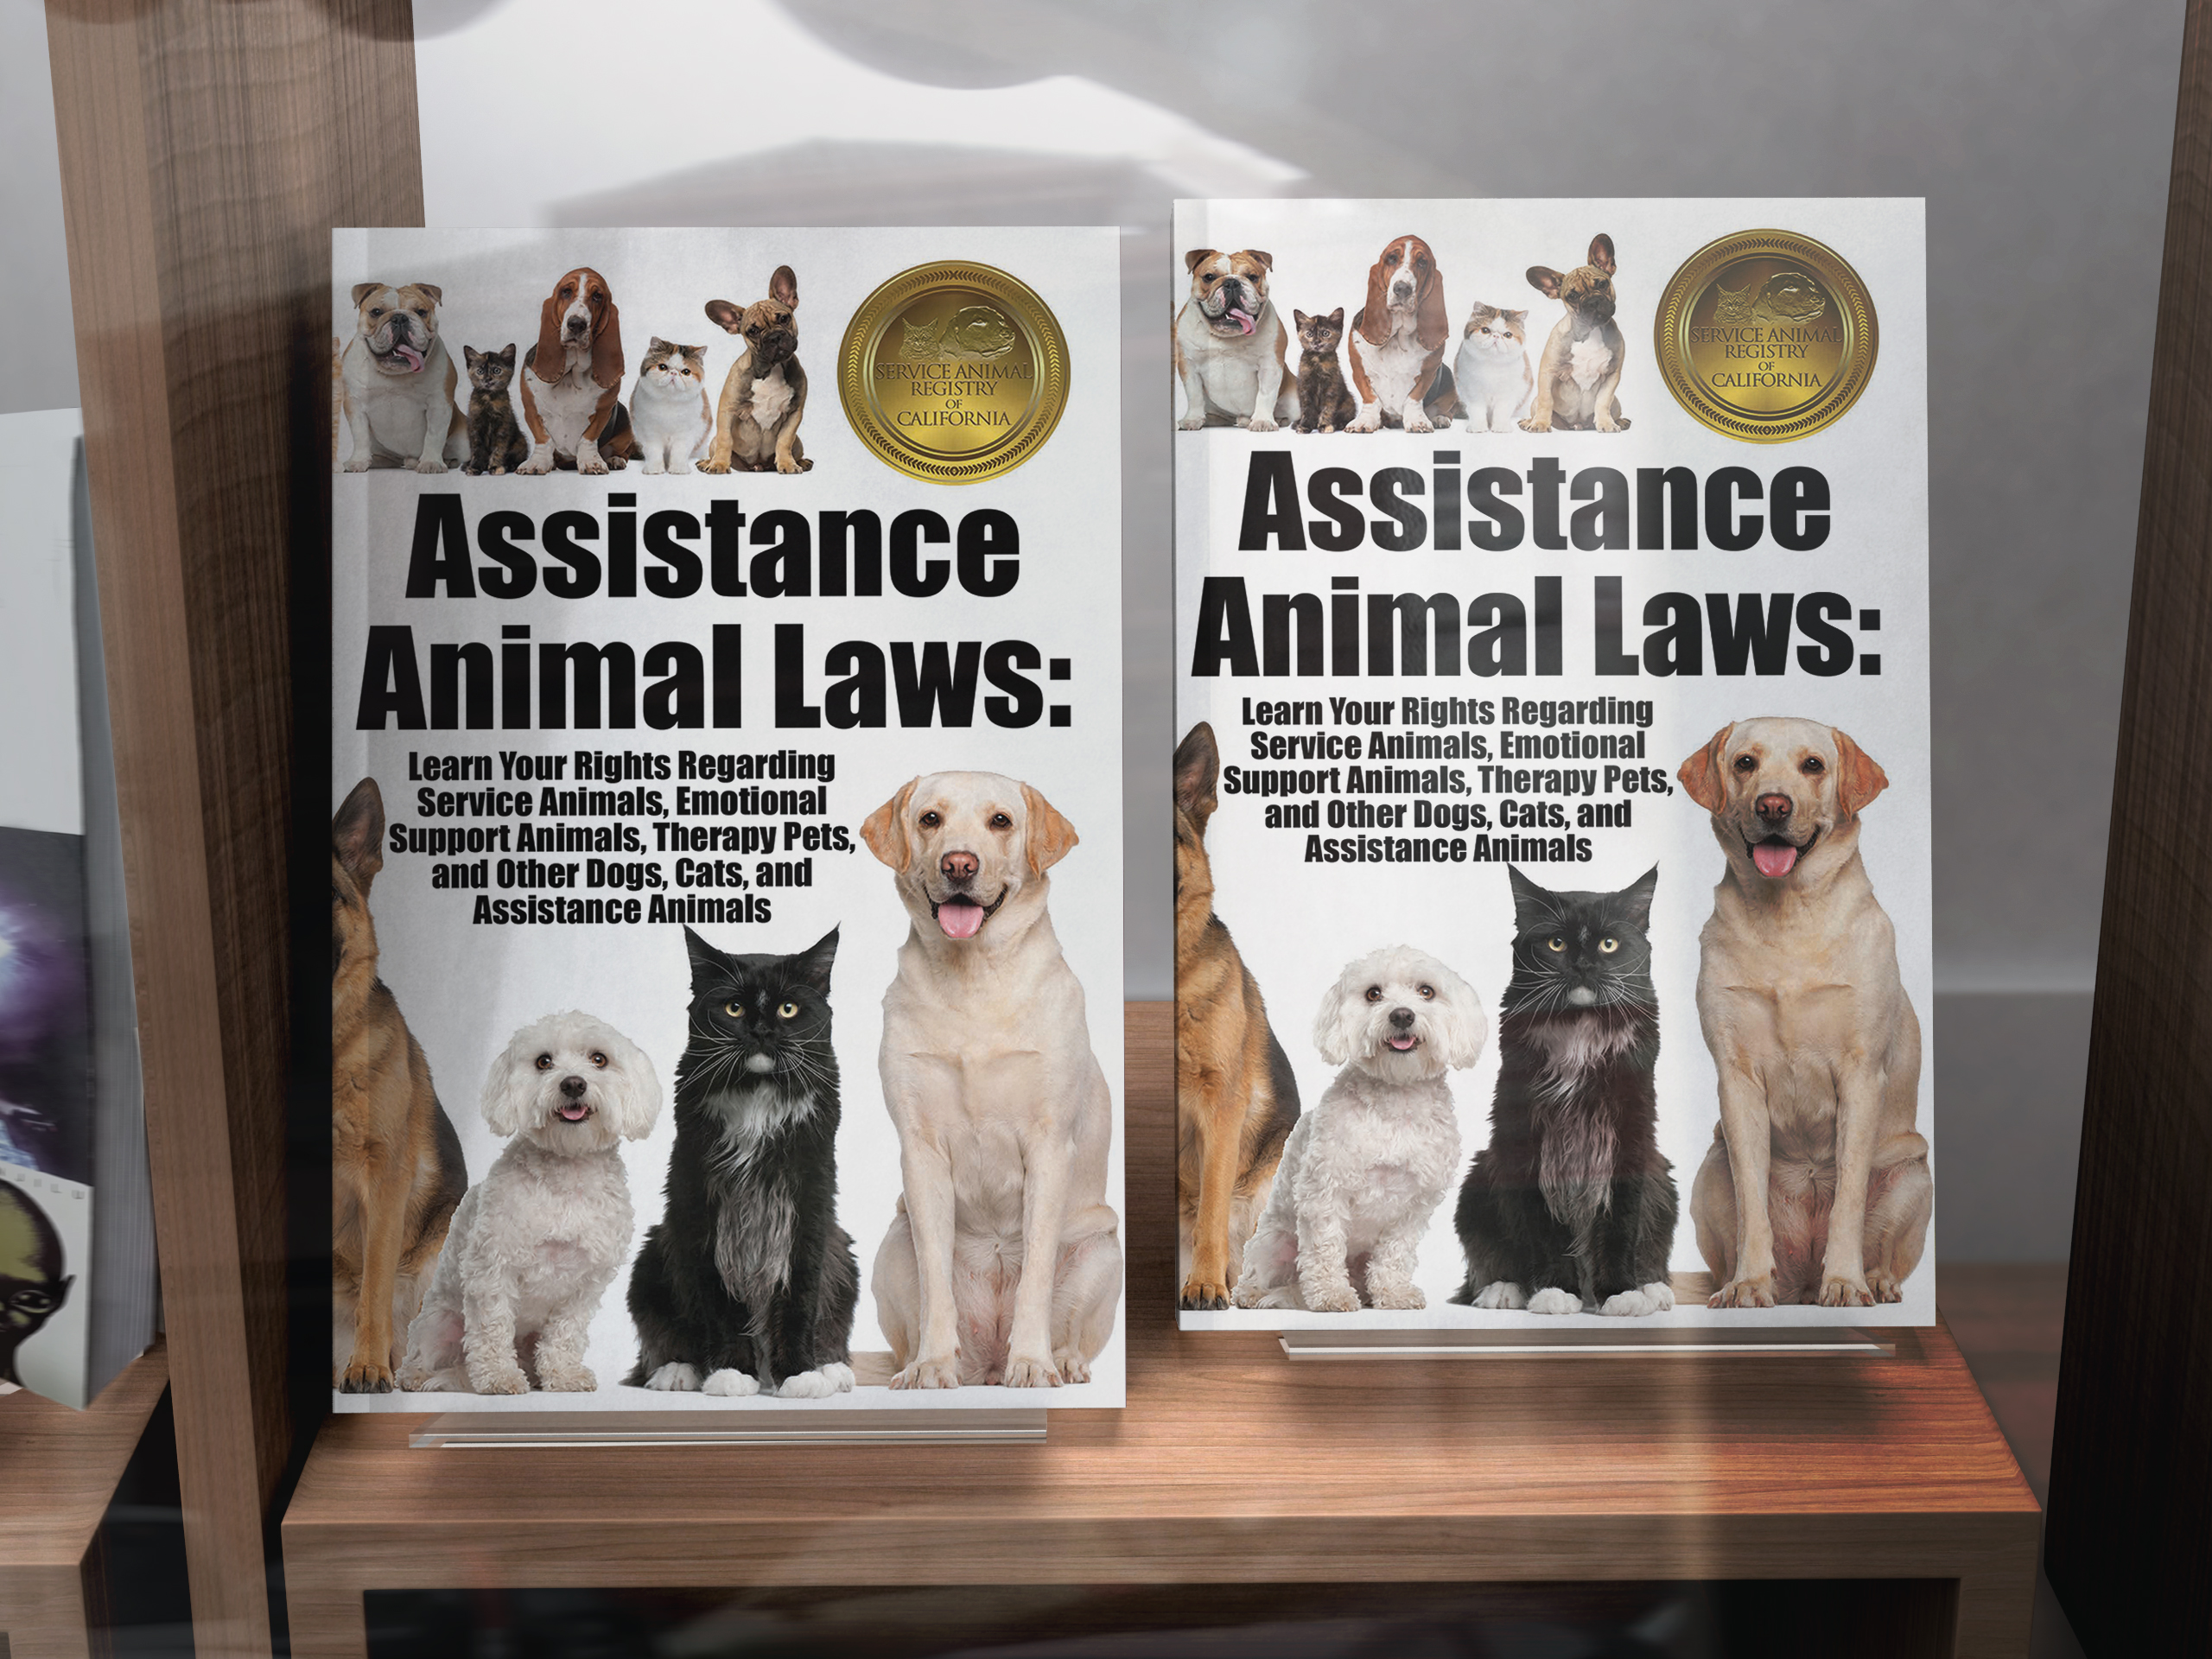 Laws aim to deal with the use of fake service animals service assistance animal laws learn your rights regarding service animals emotional support animals therapy pets and other dogs cats and assistance animals 1betcityfo Images